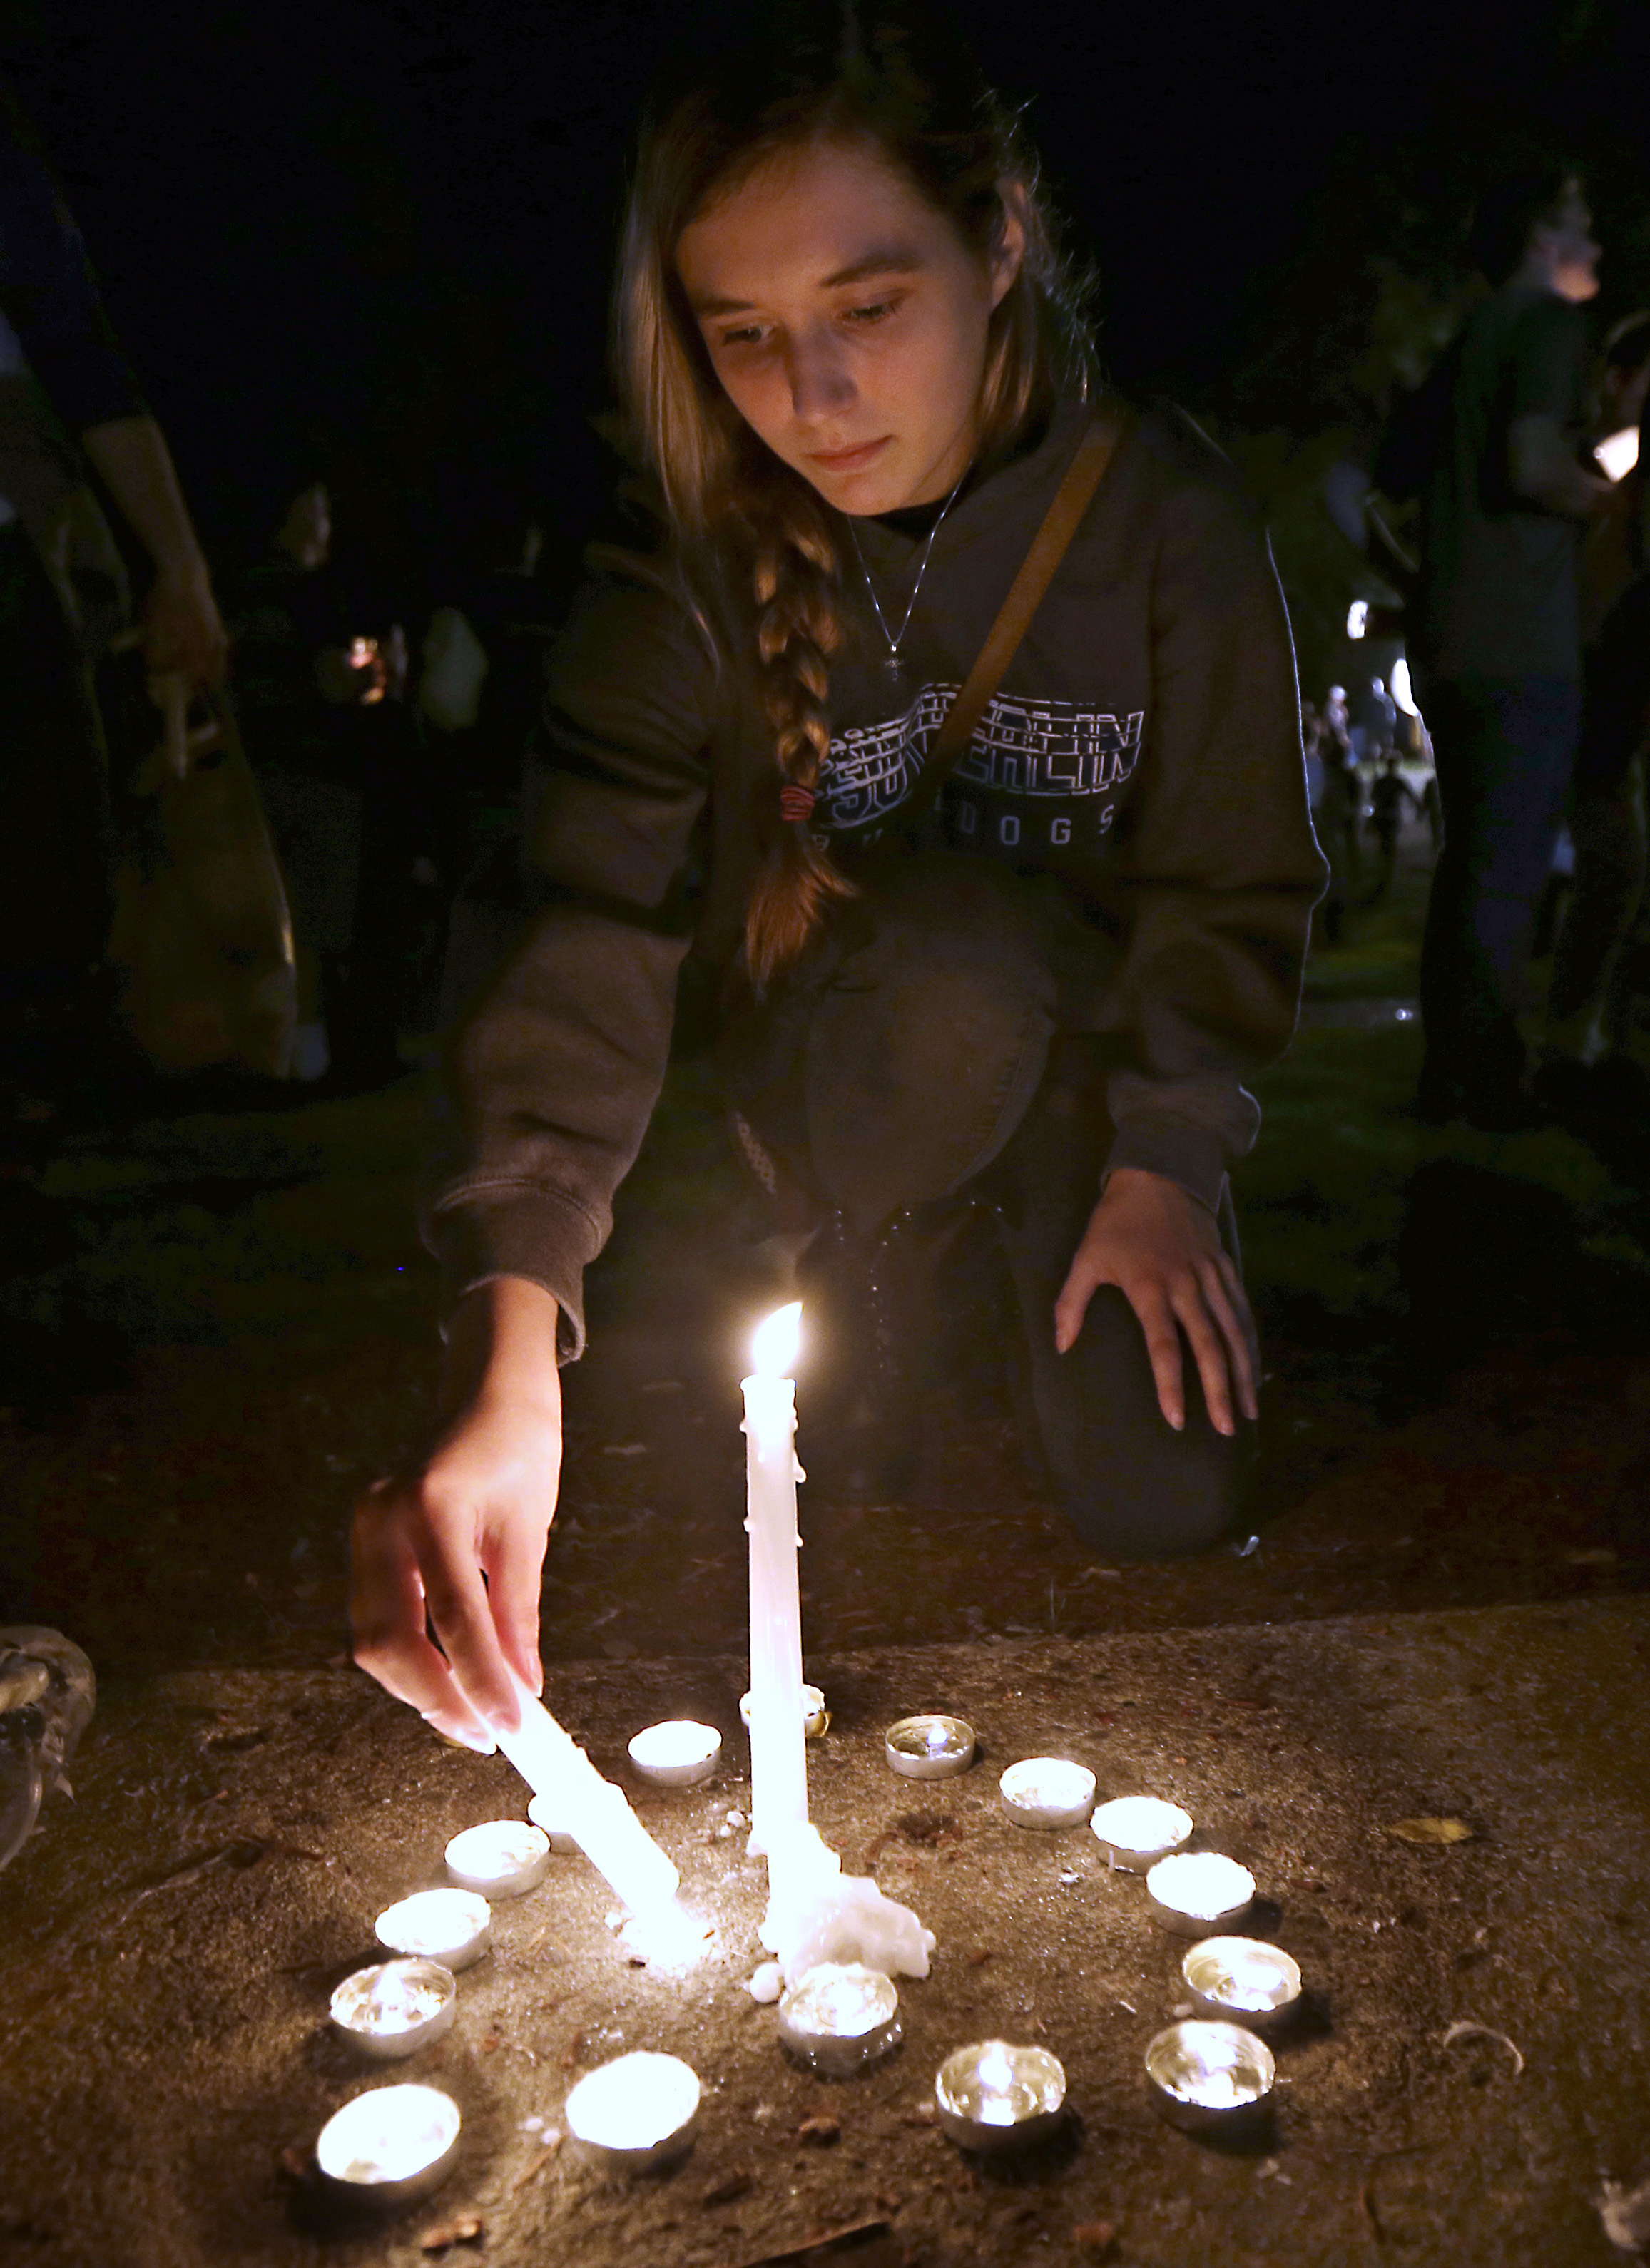 Mykyla Shaw lights a candle during a vigil for those killed in a shooting at Umpqua Community College, Thursday, Oct. 1, 2015, in Roseburg, Ore. (AP Photo/Rich Pedroncelli)